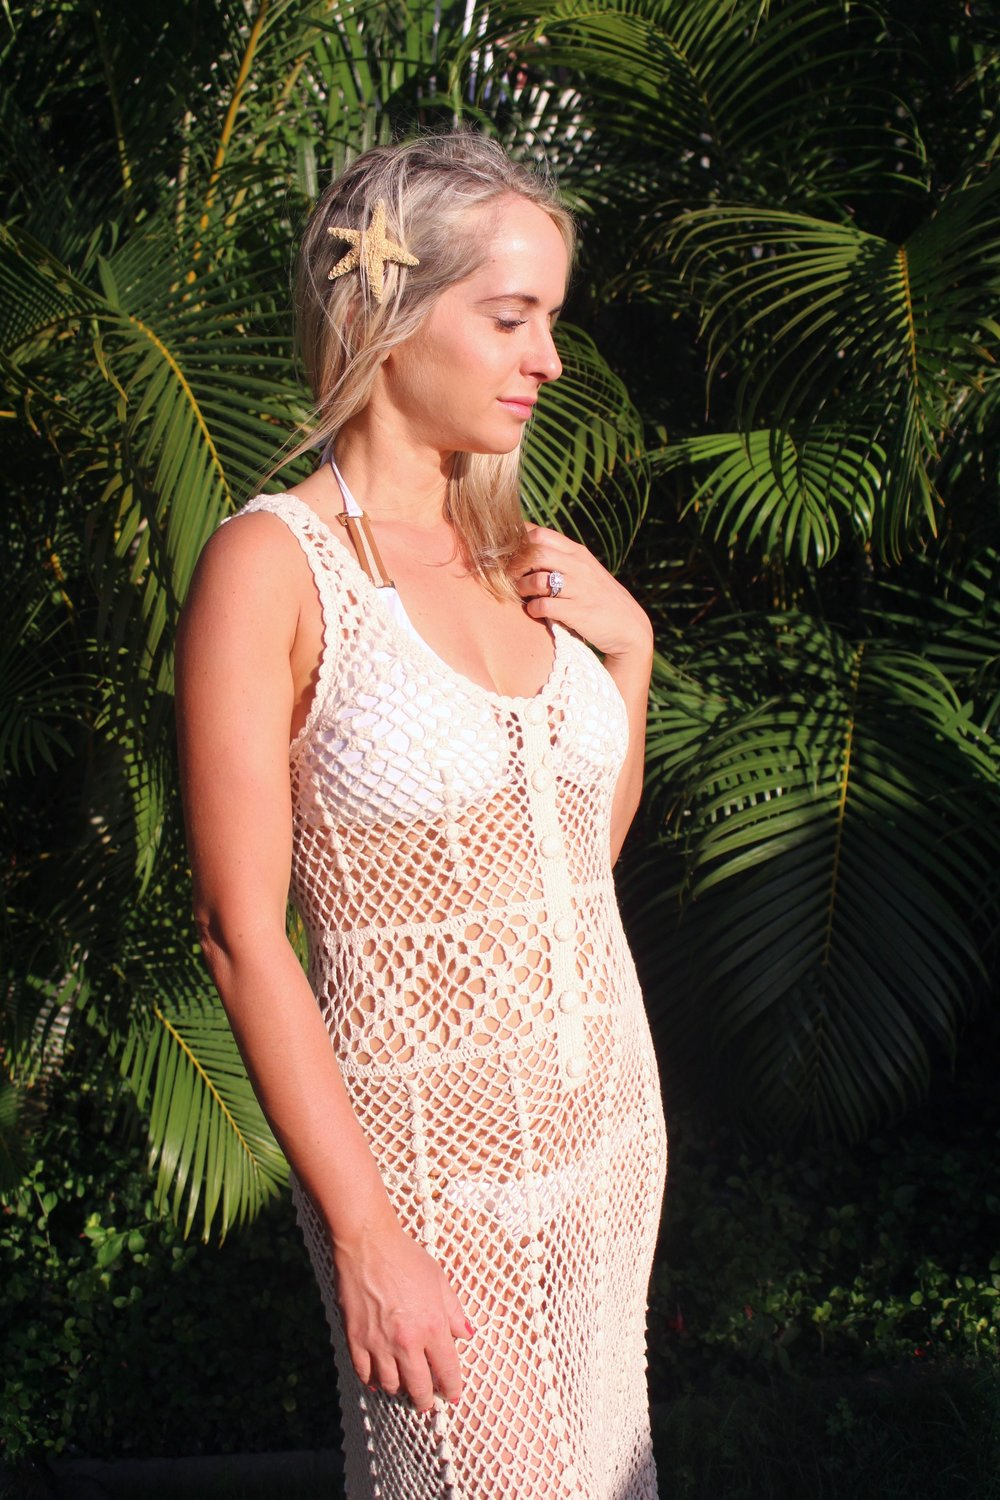 Cream crochet cover-up,  Urban Outfitters . White bikini with leather hardware, Vix Swimwear- similar  here . Starfish clip, similar  here .